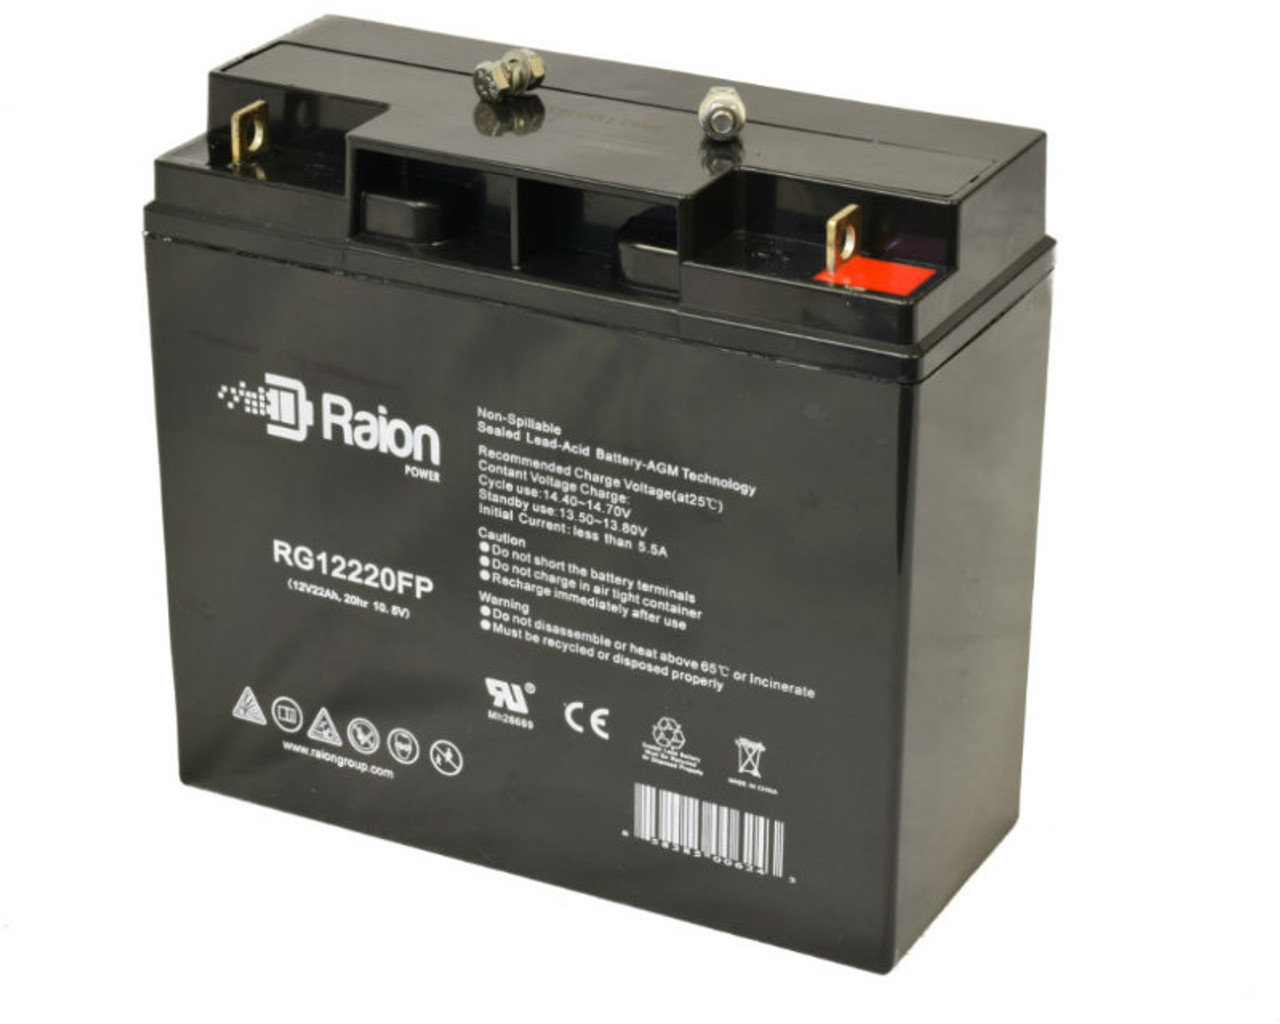 RG12220FP Sealed Lead Acid Battery Pack For Amigo Fiesta III 720000 Mobility Scooter